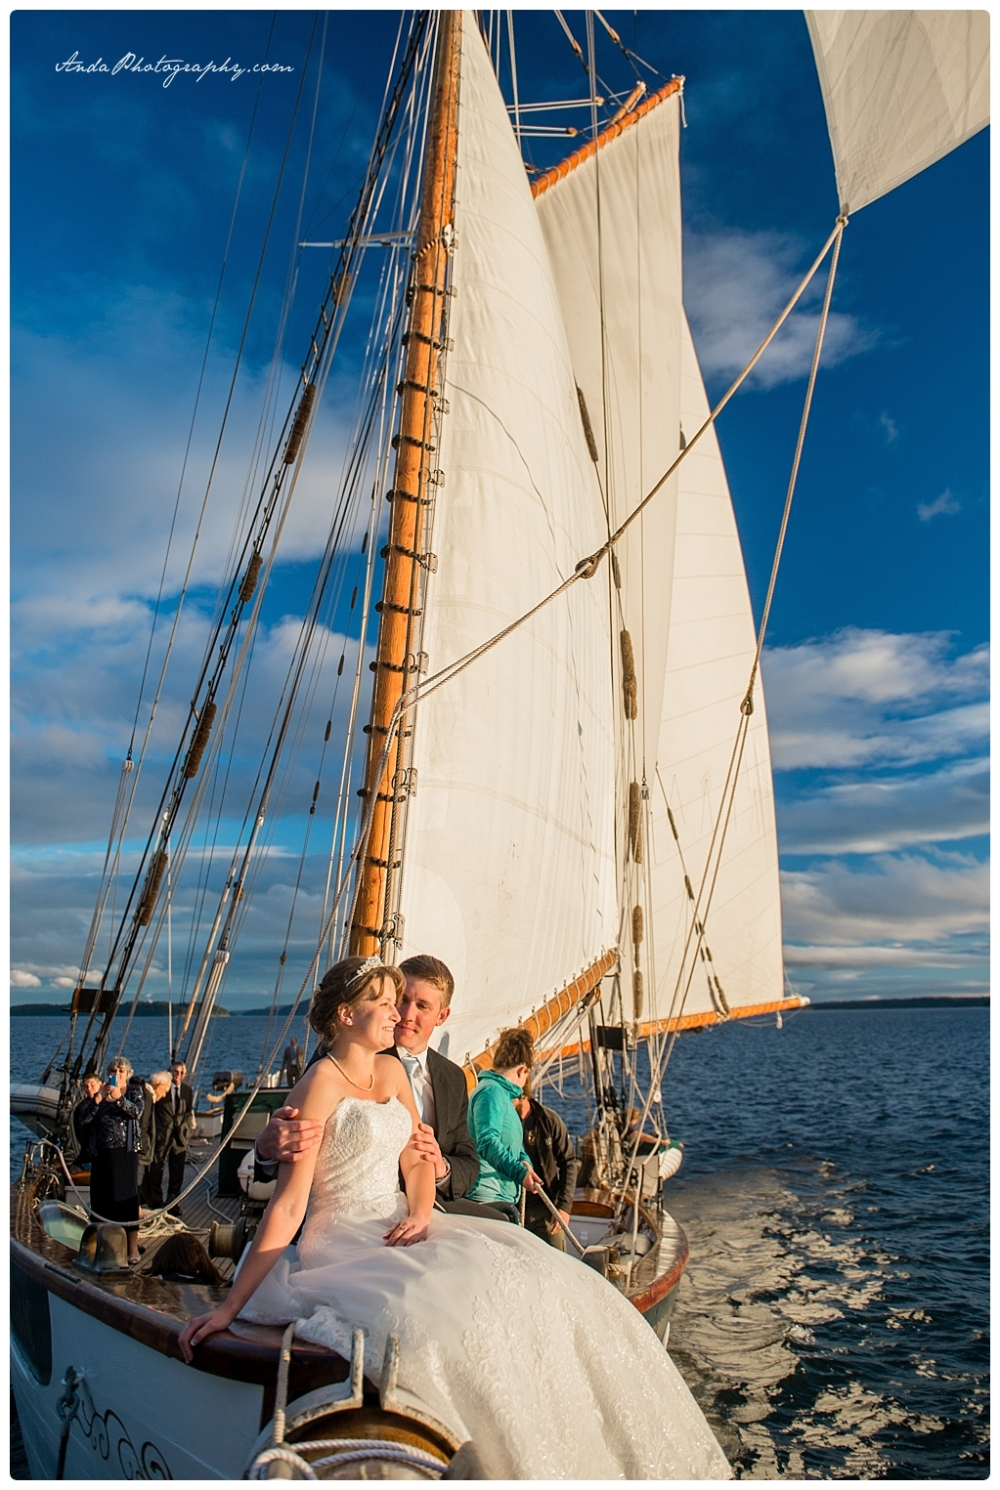 Anda Photography Bellingham wedding photographer seattle wedding photographer Schooner Zodiak Wedding photos_0033